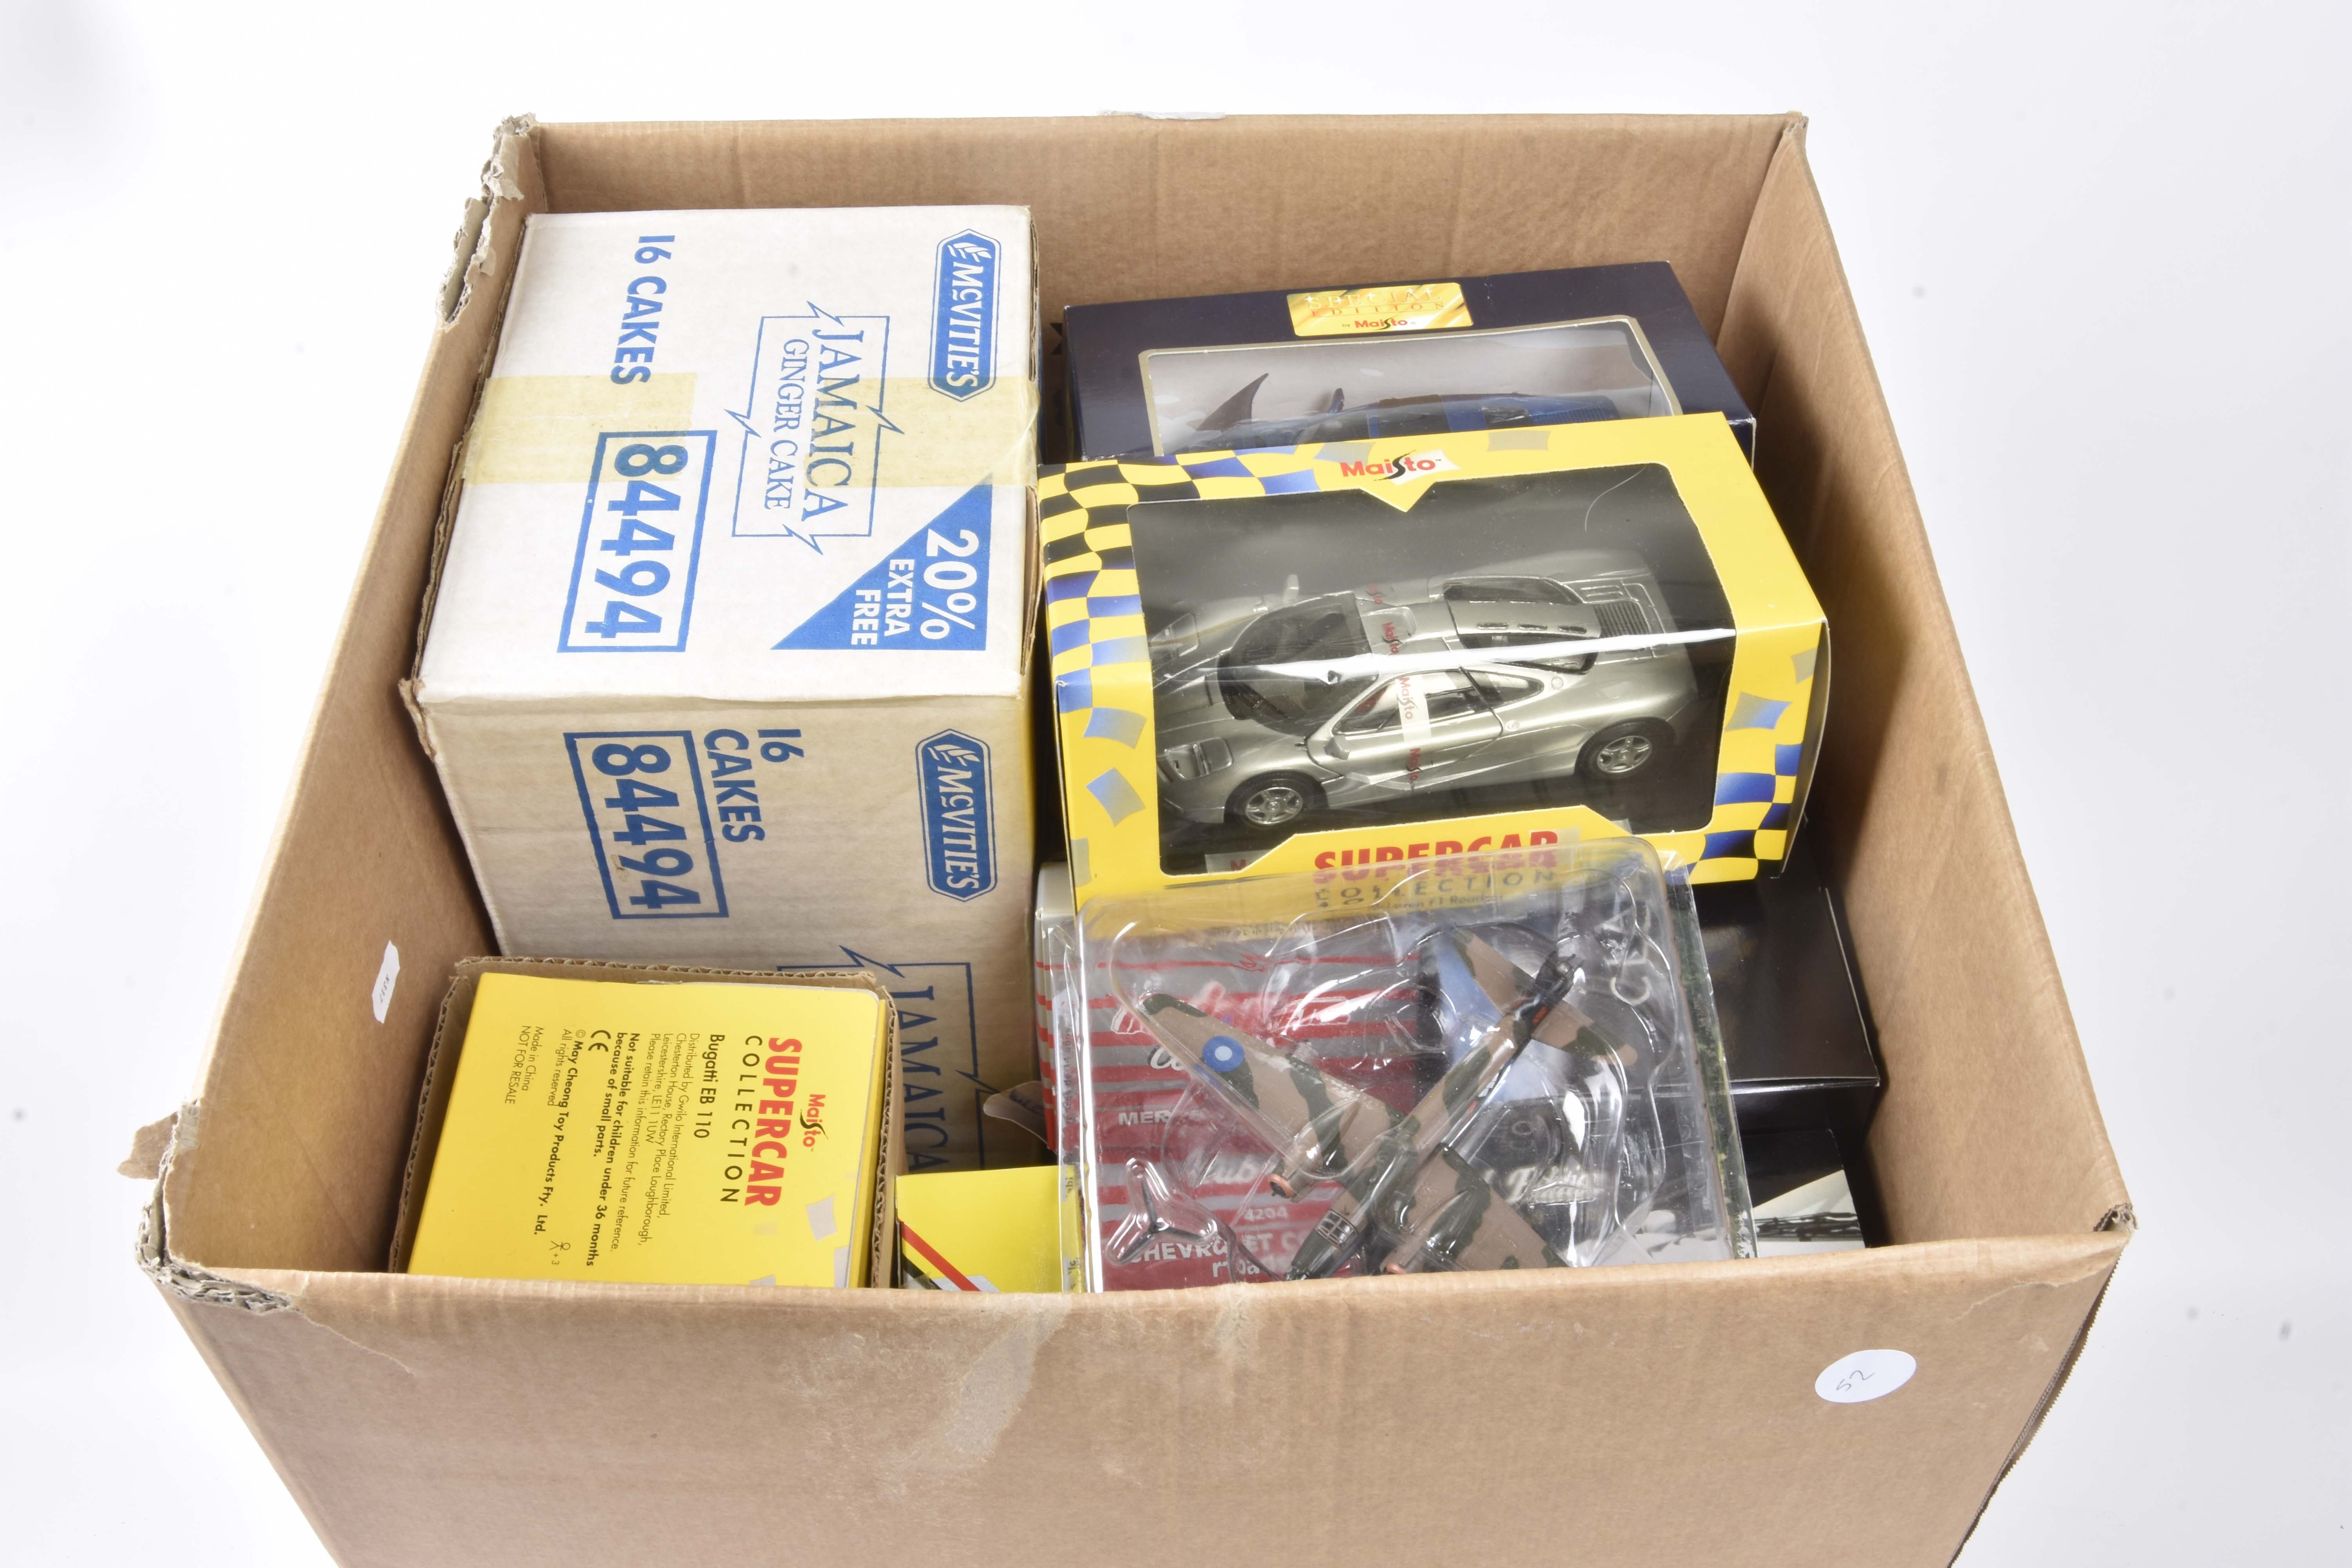 Modern Diecast 1:18 Scale and Smaller, a boxed/packaged collection of private vehicles and